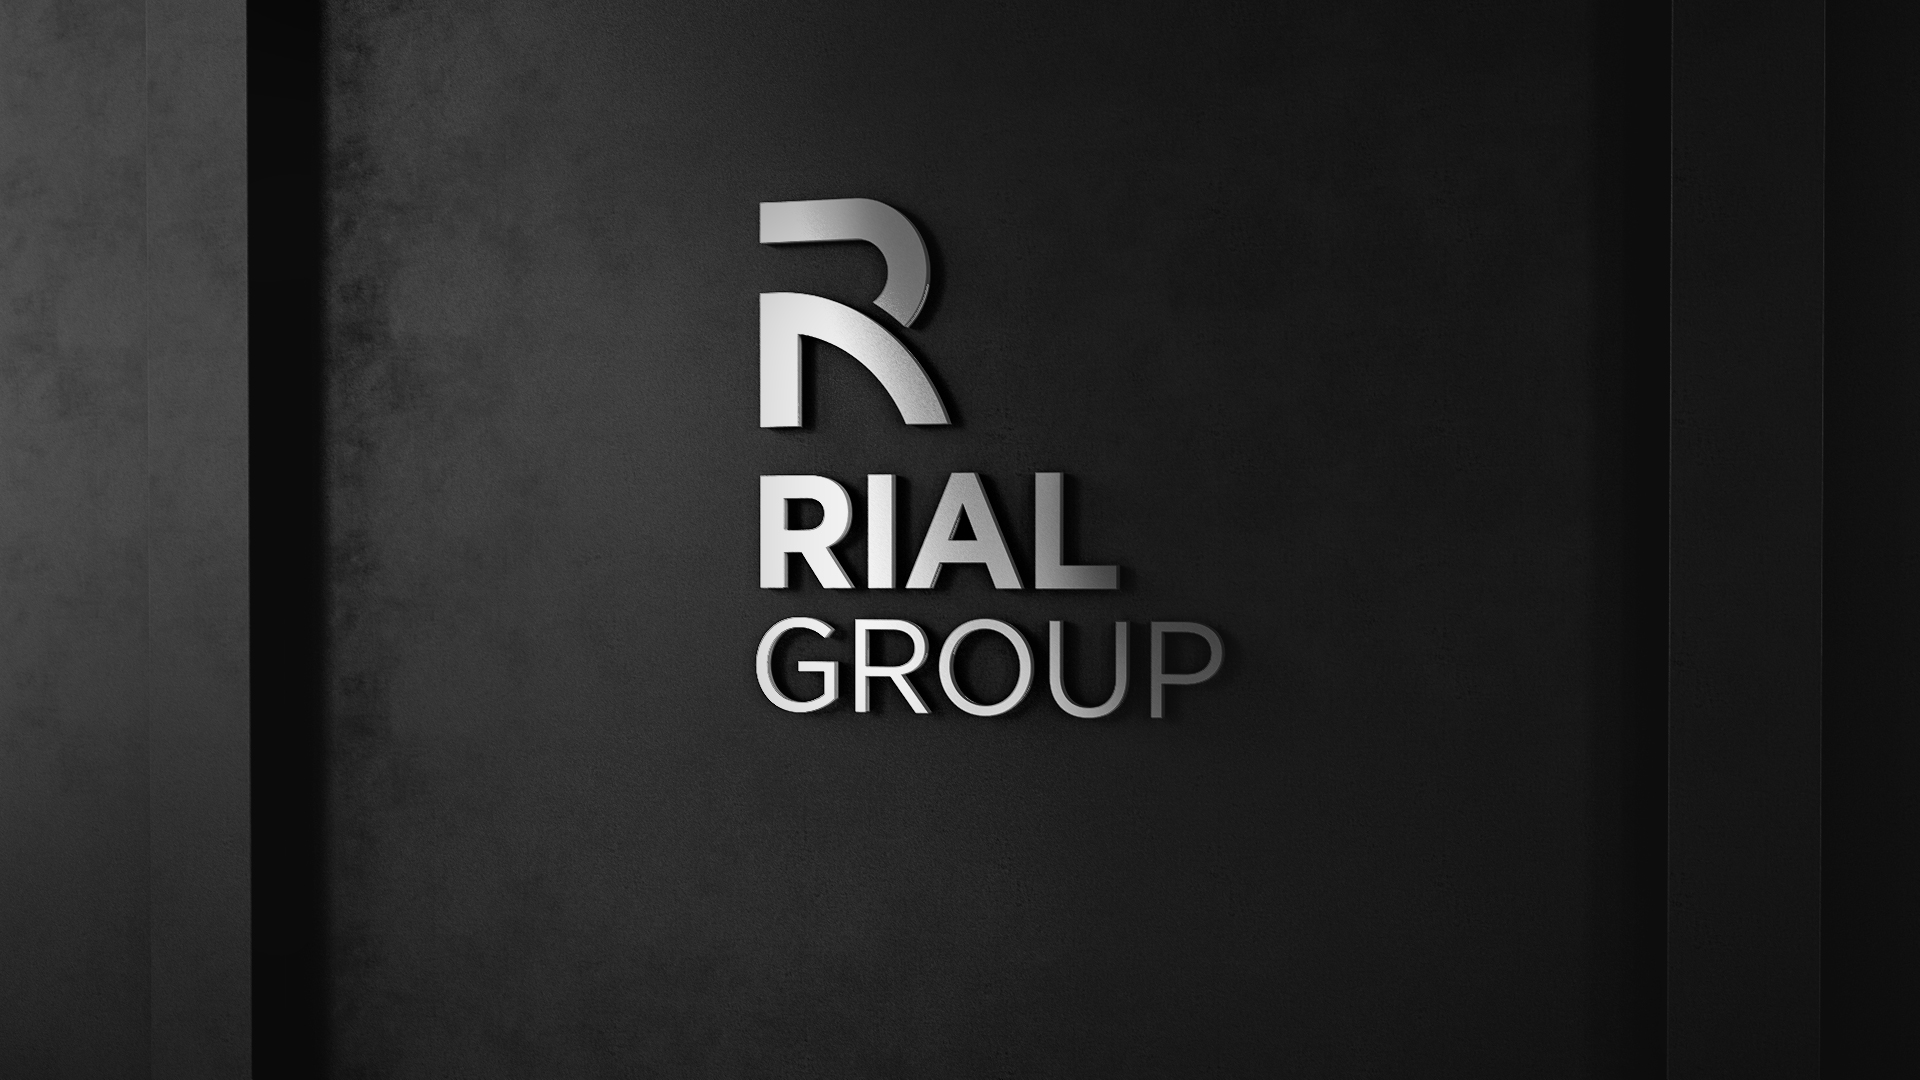 rial group